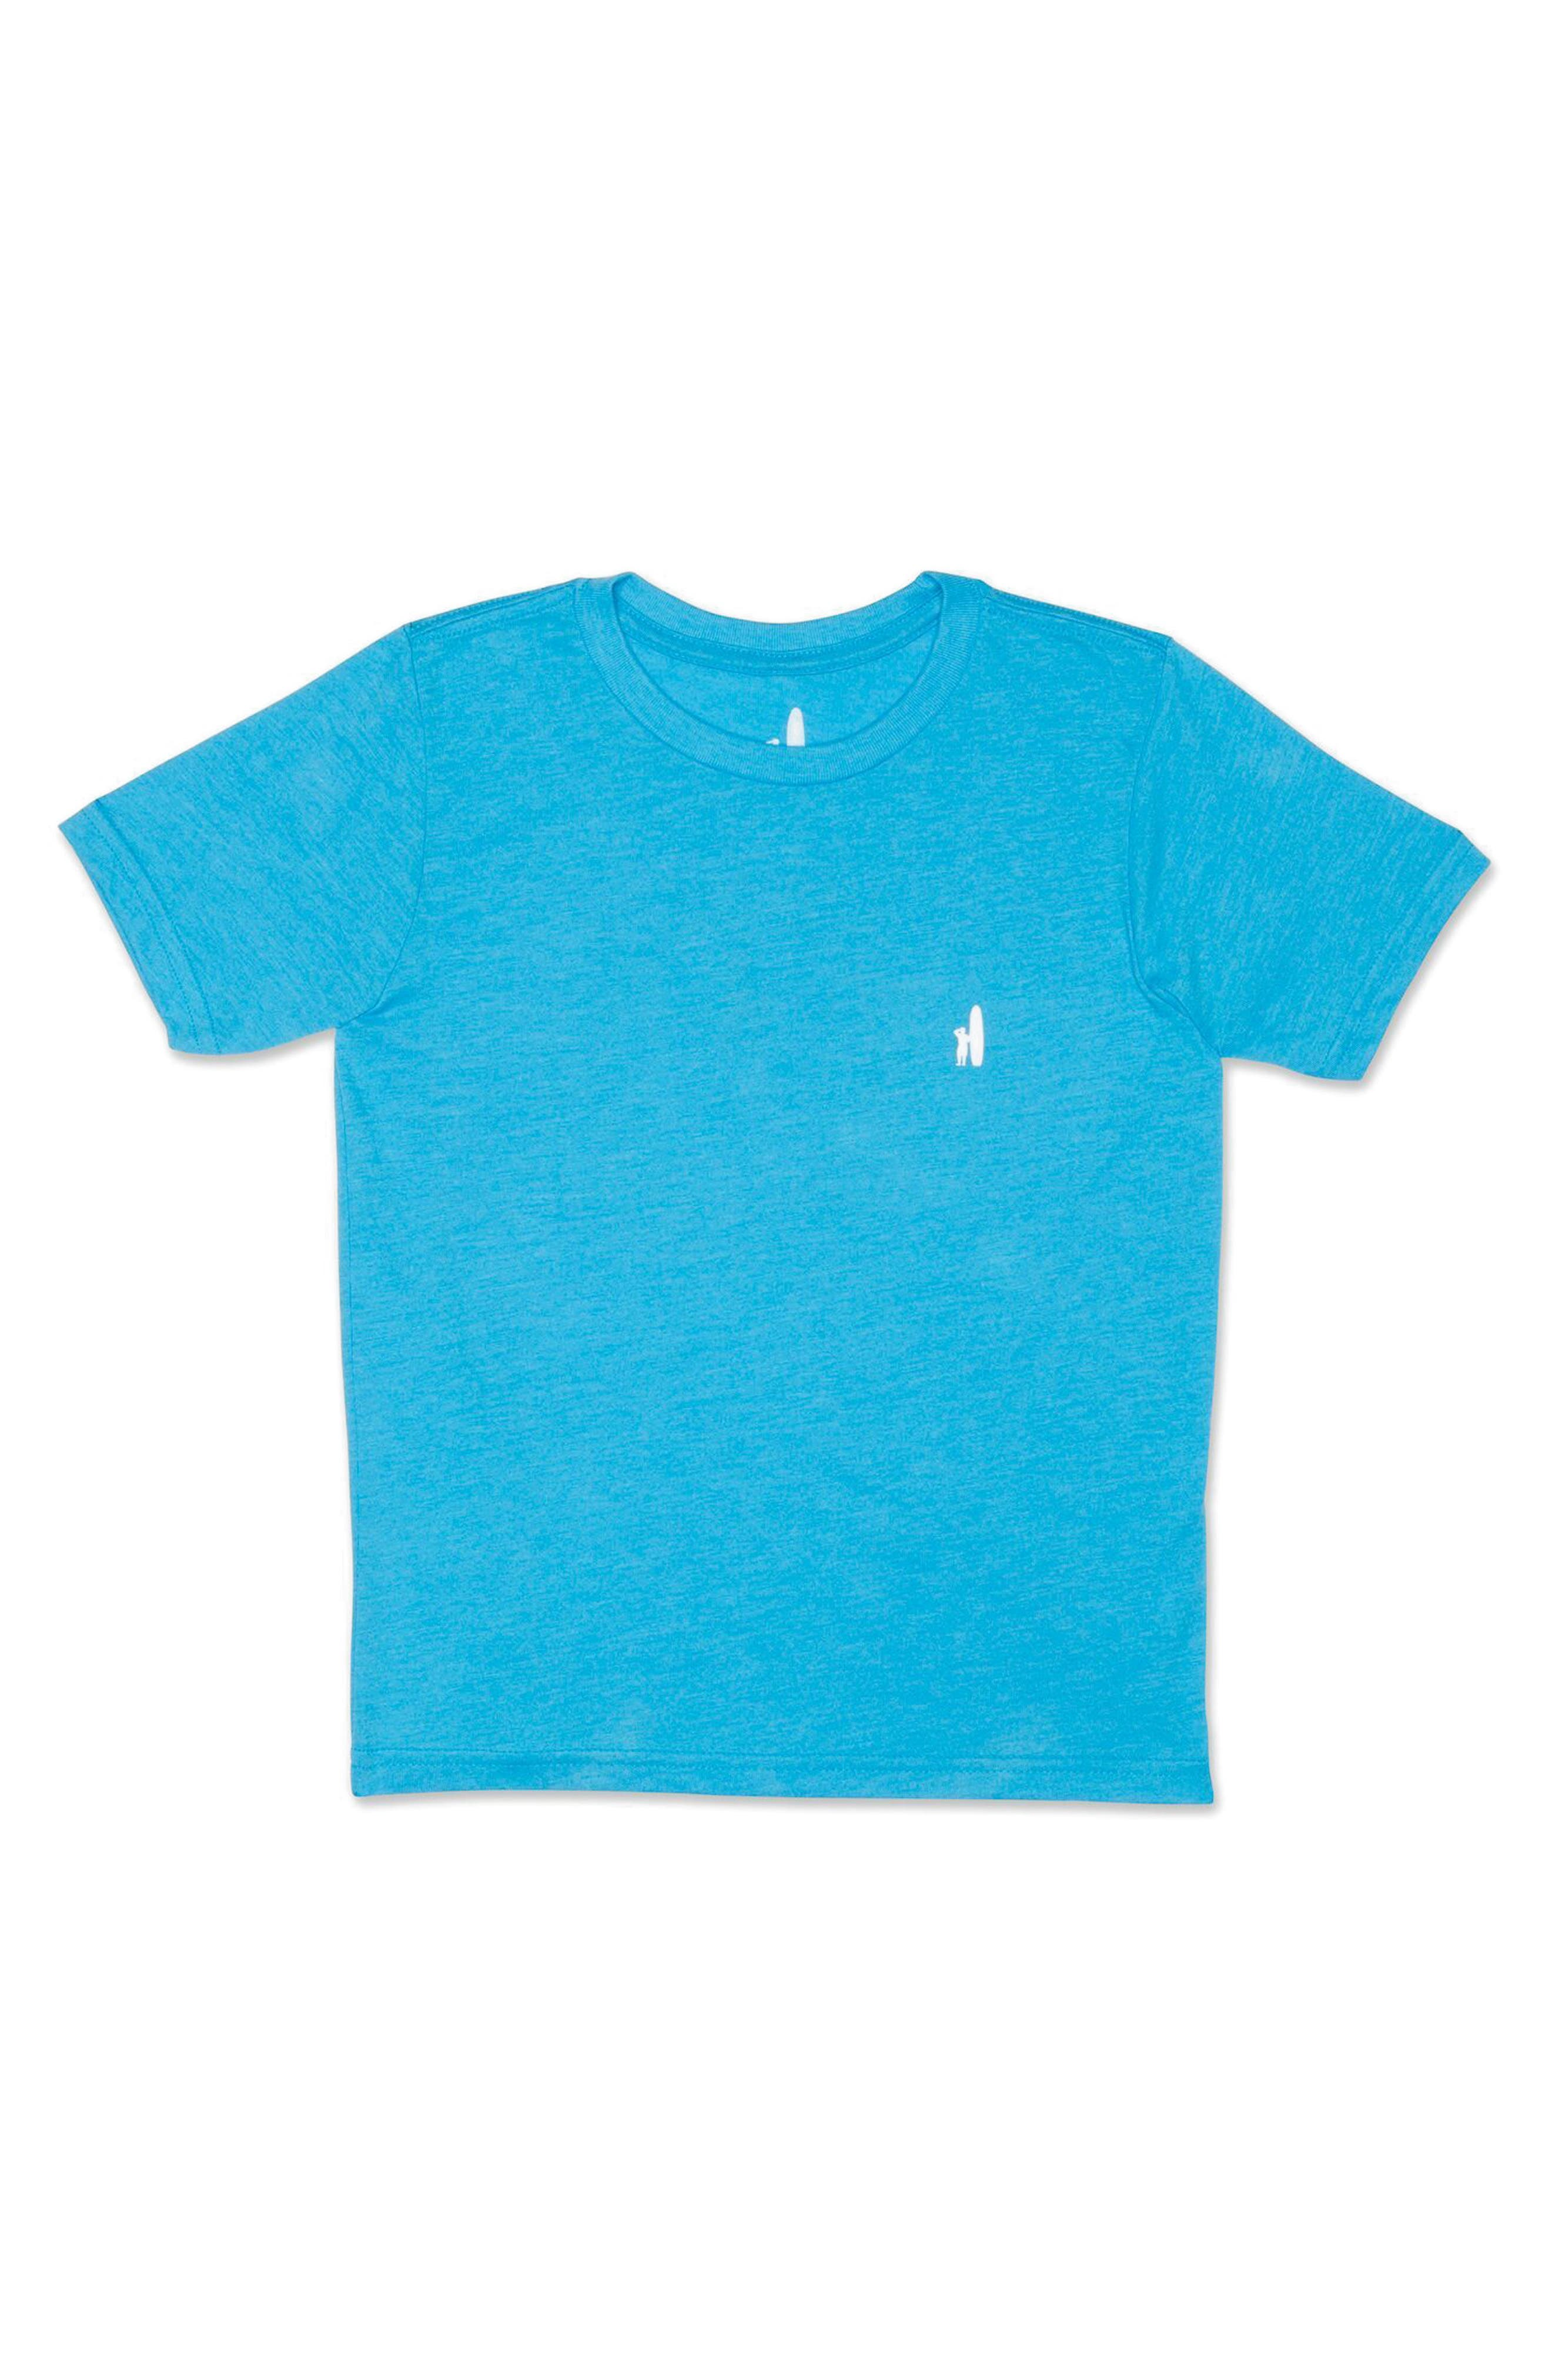 Vance Graphic T-Shirt,                             Main thumbnail 1, color,                             Cayman